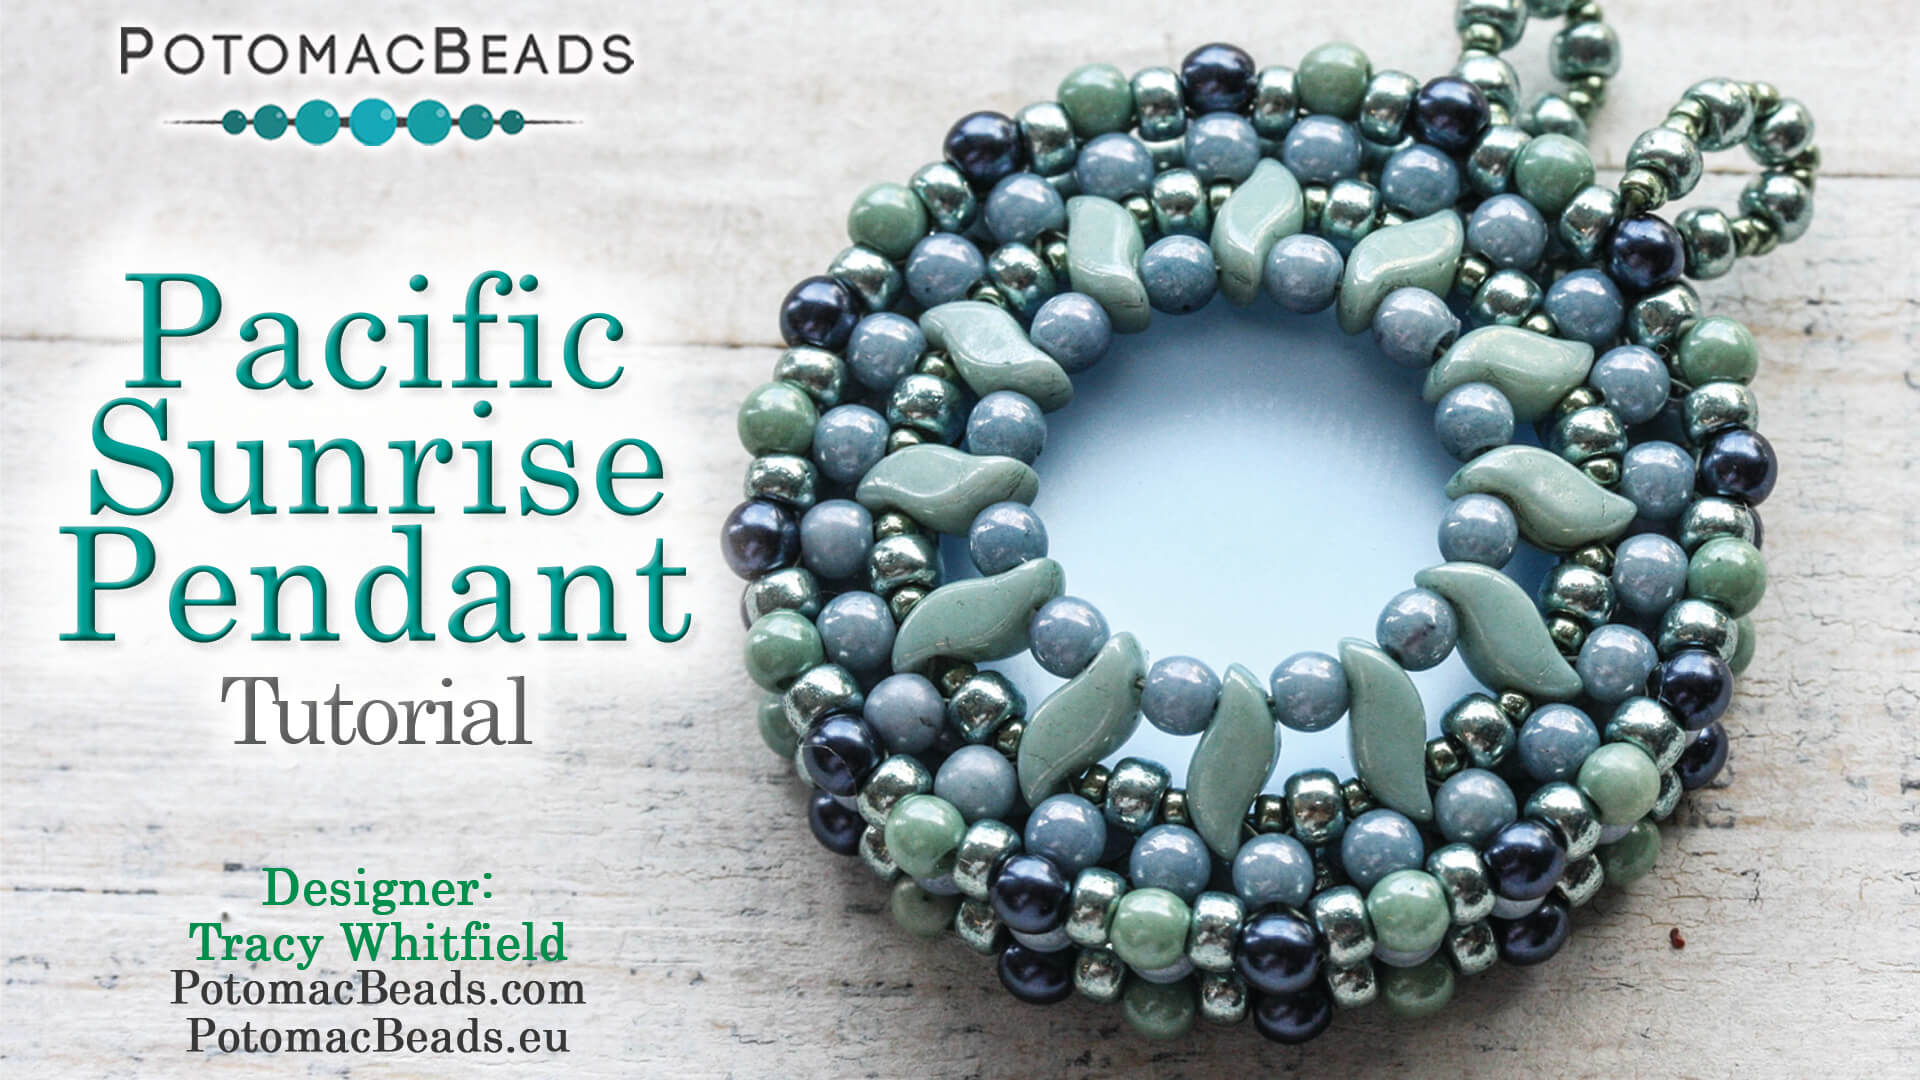 How to Bead / Videos Sorted by Beads / Pearl Videos (Czech & Freshwater) / Pacific Sunrise Pendant Tutorial